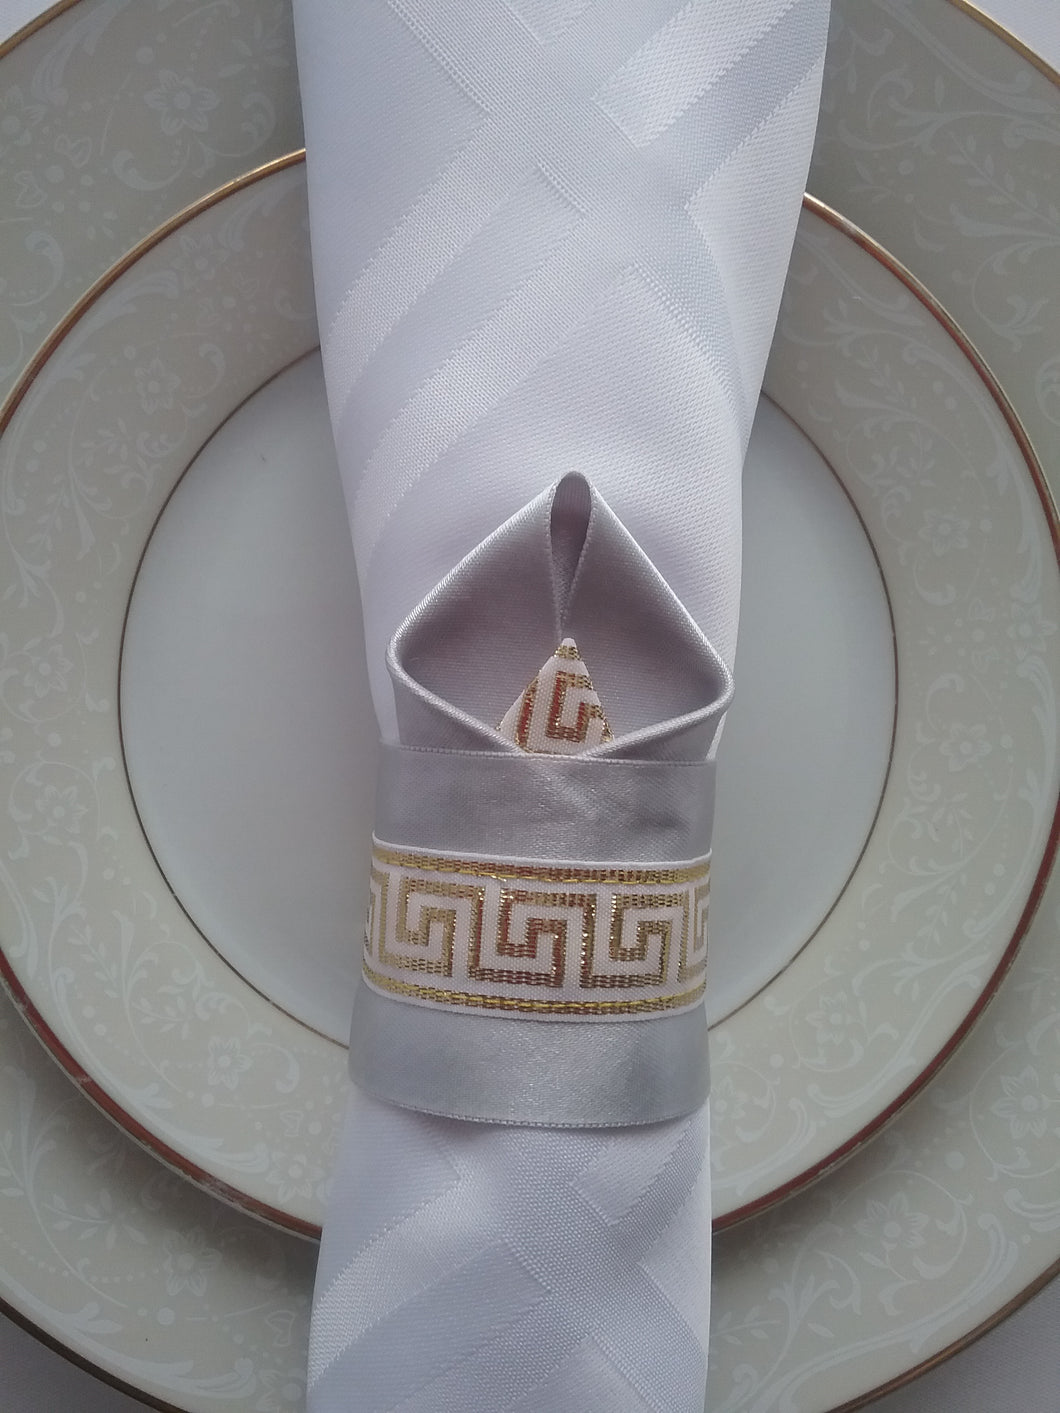 Sophie Napkin Ring Silver Gold Luxe Table Linens Bright Colour and Wonderful Pattern Handmade Art by Maria Iliescu - HANDMADE ART BY MARIA ILIESCU